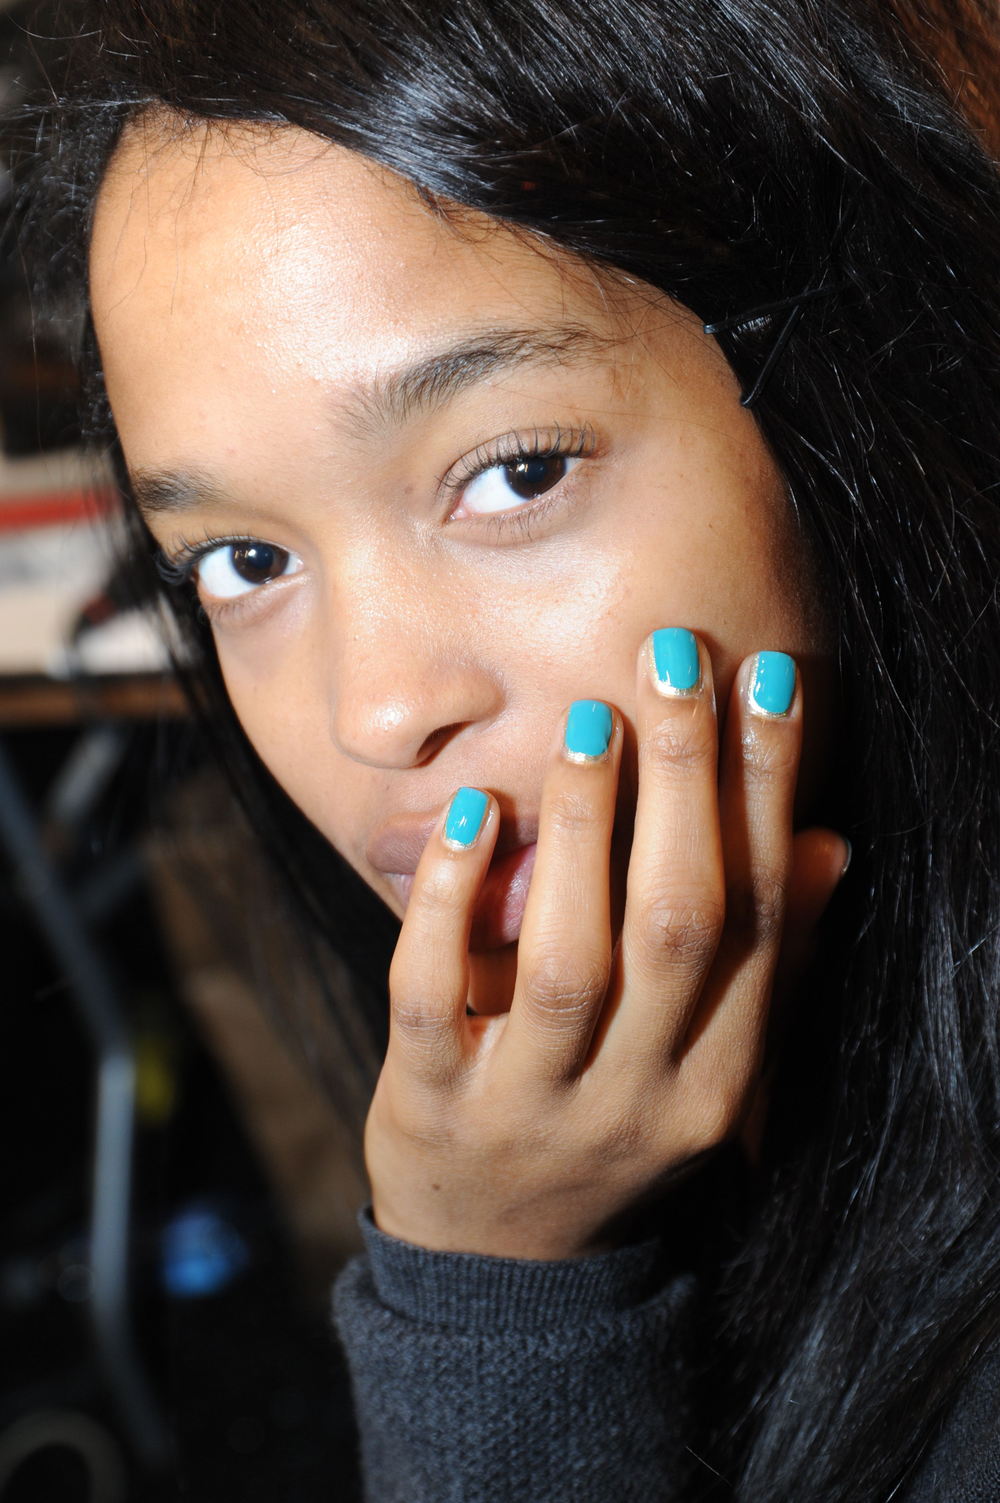 <p>BOLD COLOR: Tracy Reese collaborated with Sally Hansen for the fifteenth consecutive season to create exclusive polish shades to complement her Fall 2013 collection. The Tracy Reese for Sally Hansen collection includes New Wave Blue (shown), Perfectly Poppy (scarlet), and Malbec (aubergine). Photography courtesy Sally Hansen</p>